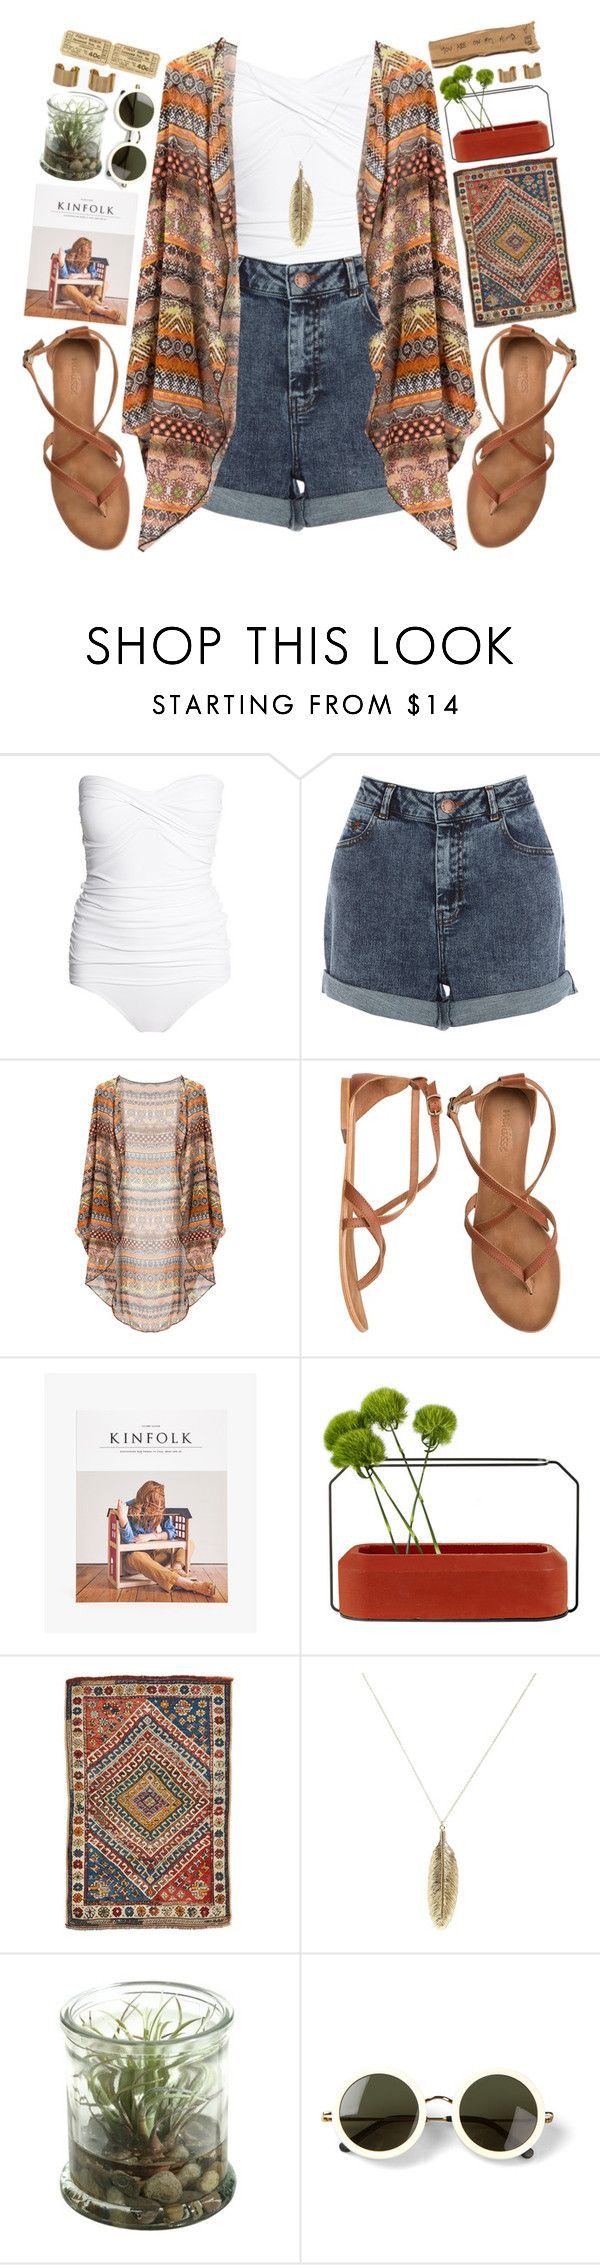 """""""Let Me Be Your Coffee Pot"""" by theonlynewgirl ❤ liked on Polyvore featuring moda, Melissa Odabash, Warehouse, Matisse, Spécimen Editions, ASOS, The Row y Maison Margiela"""